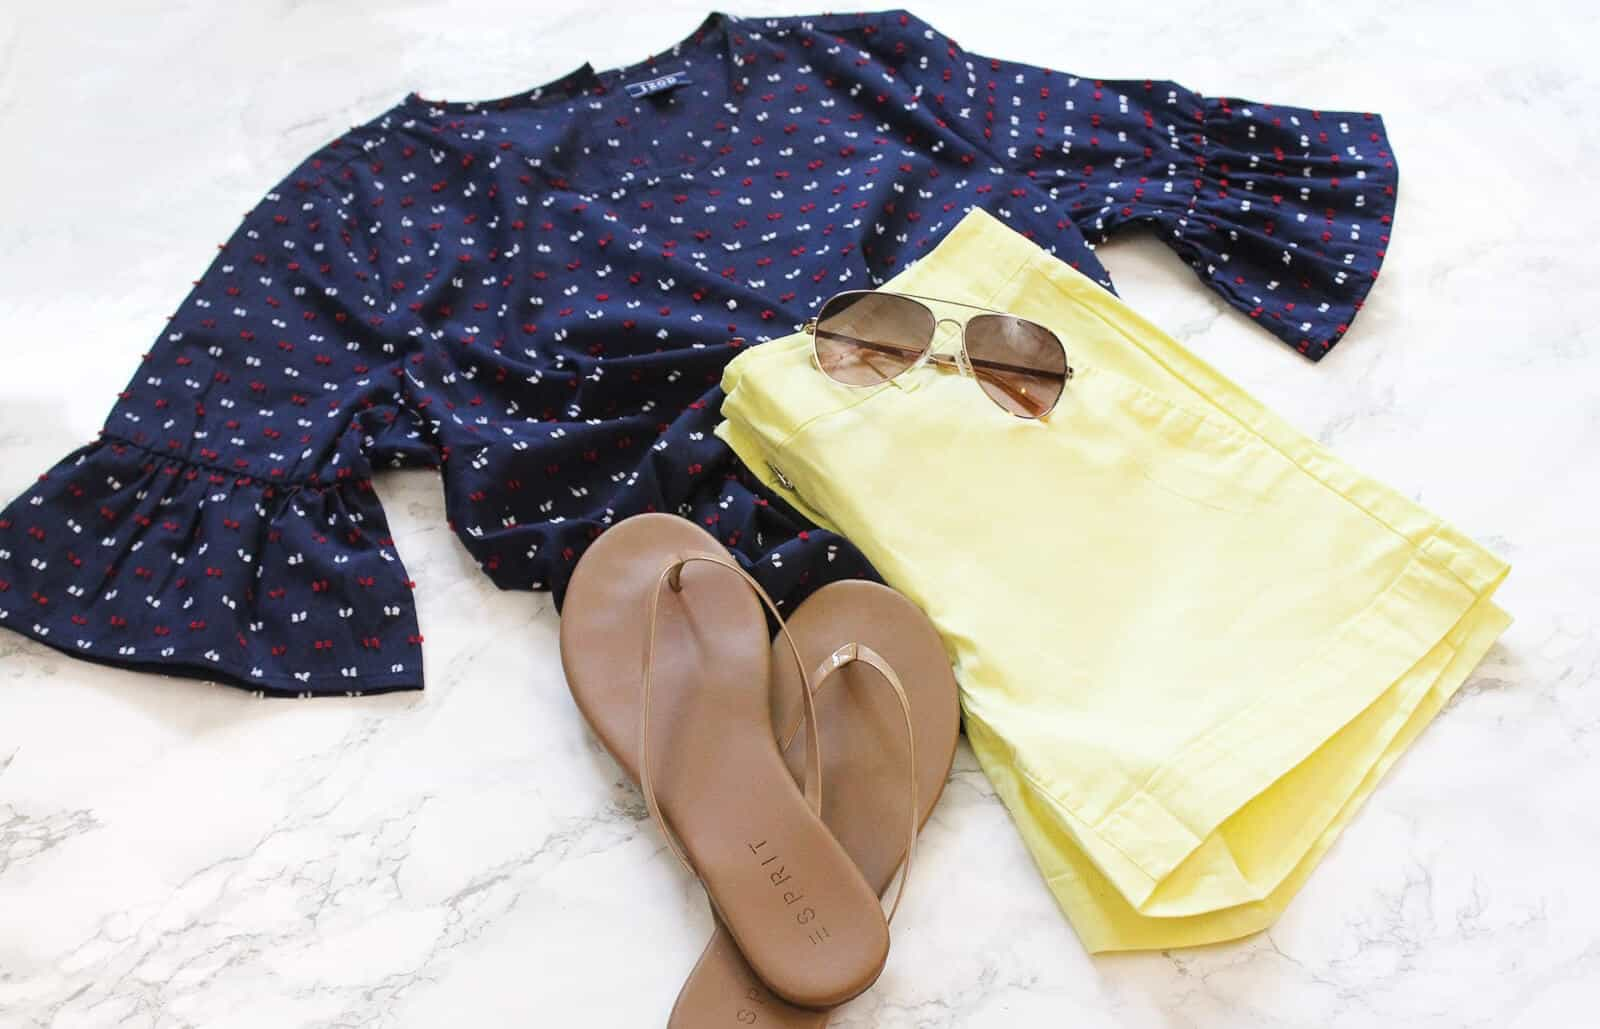 Summer outfit lays next to flip flops and sunglasses.